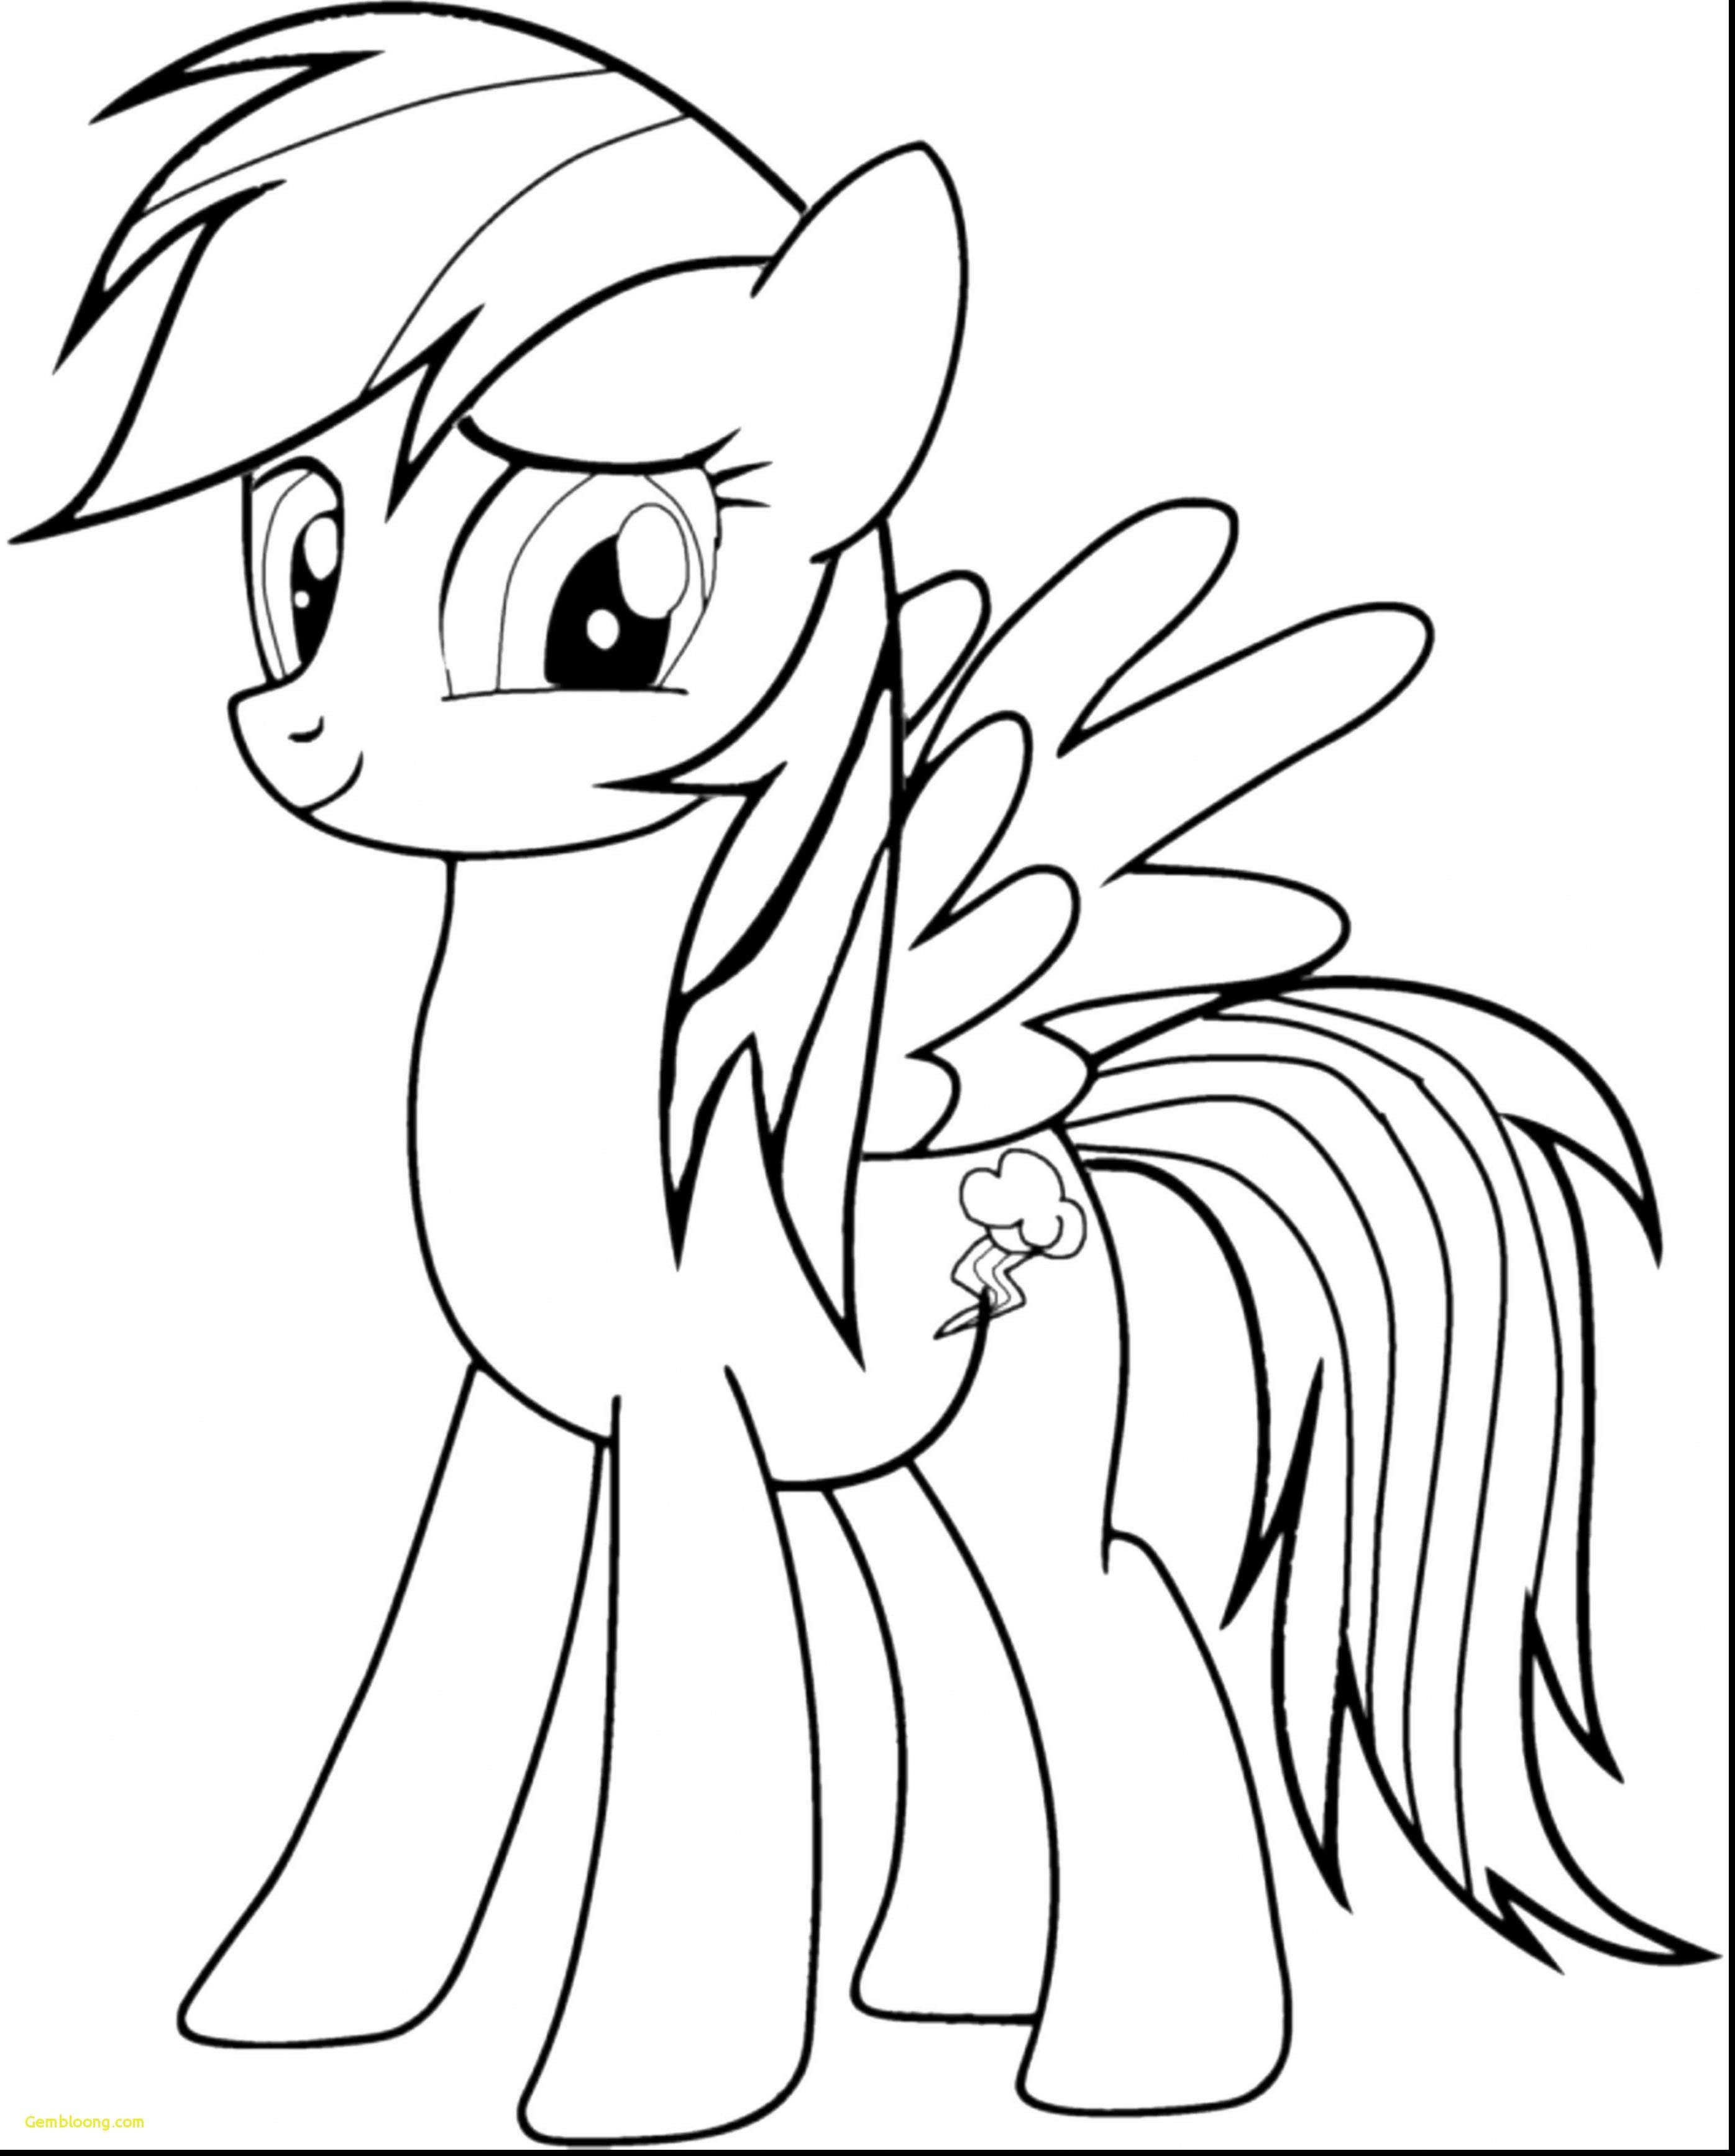 Equestria Girls Coloring Pages Lovely 56 Rainbow Dash Ausmalbilder In 2020 My Little Pony Coloring Horse Coloring Pages Cartoon Coloring Pages